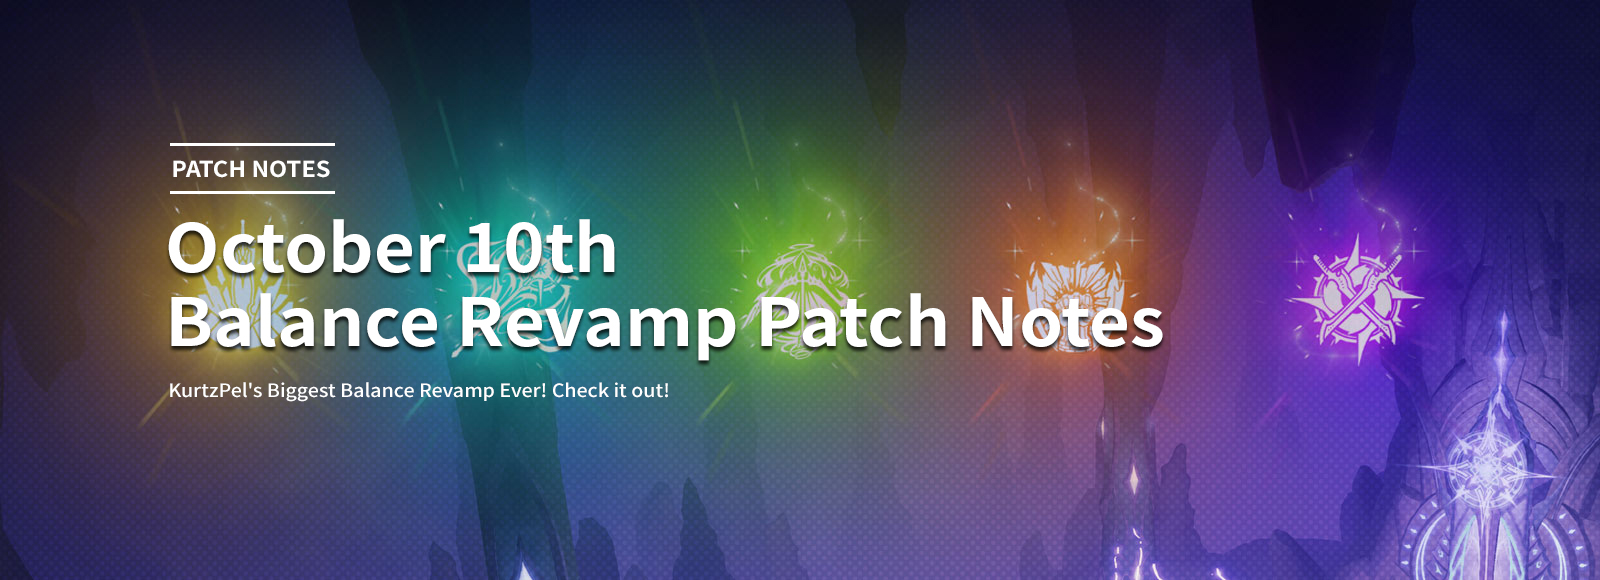 October 10th Balance Revamp Patch Notes